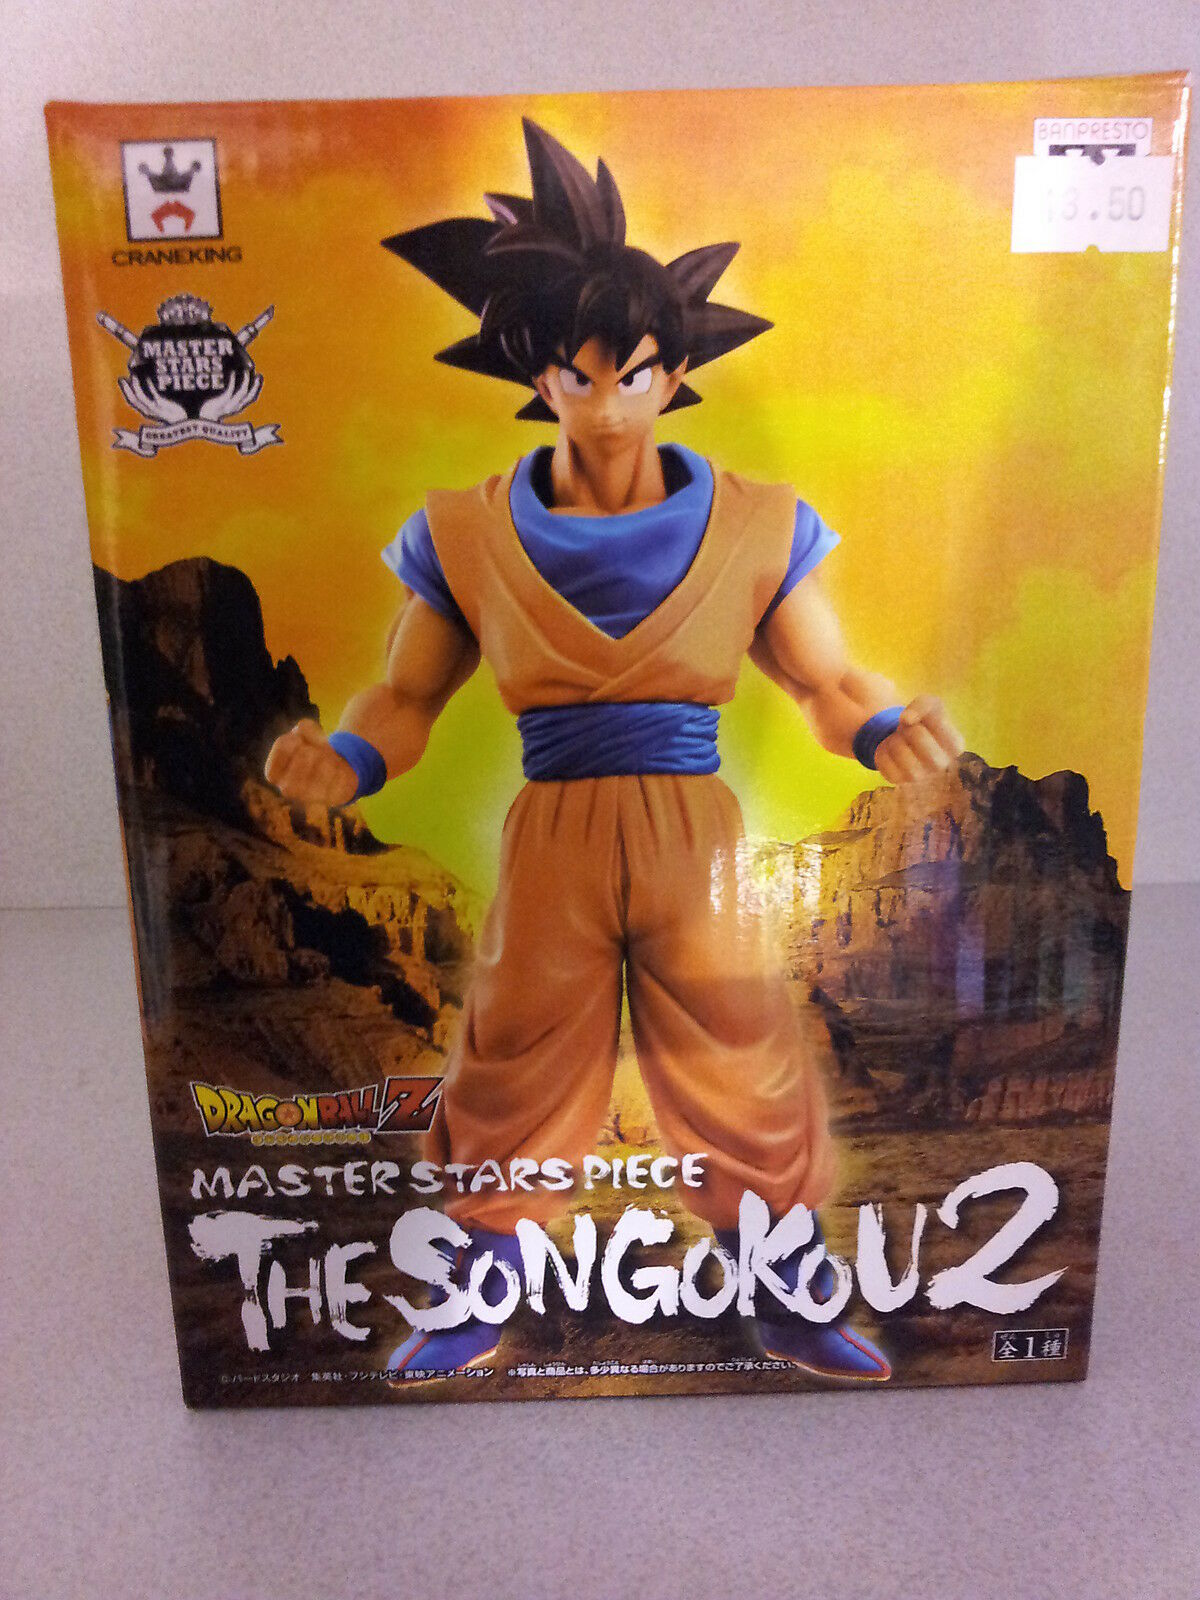 Dragonball Z Bettwäsche The Songoku Songokou 2 Songoku The Goku Dragonball Z Action Figure